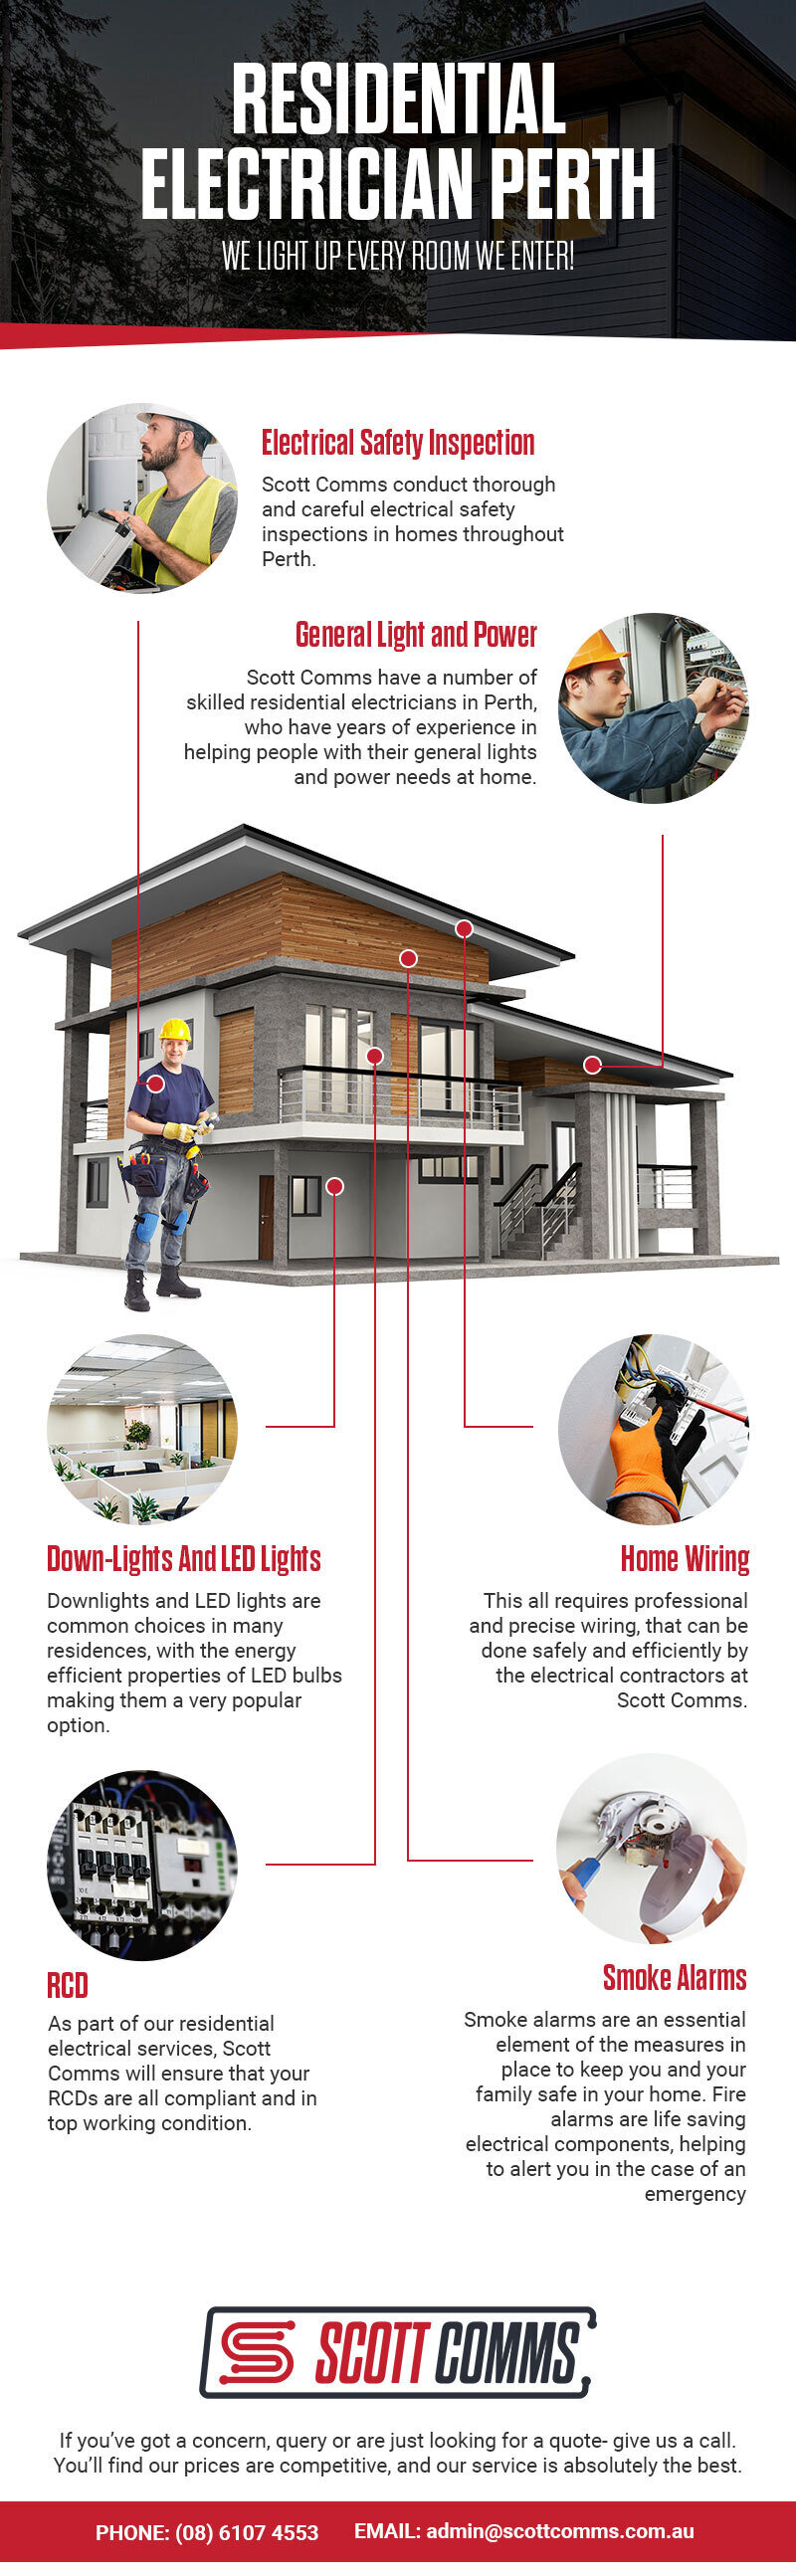 residential_electricians_+Perth_Infographic-plaza